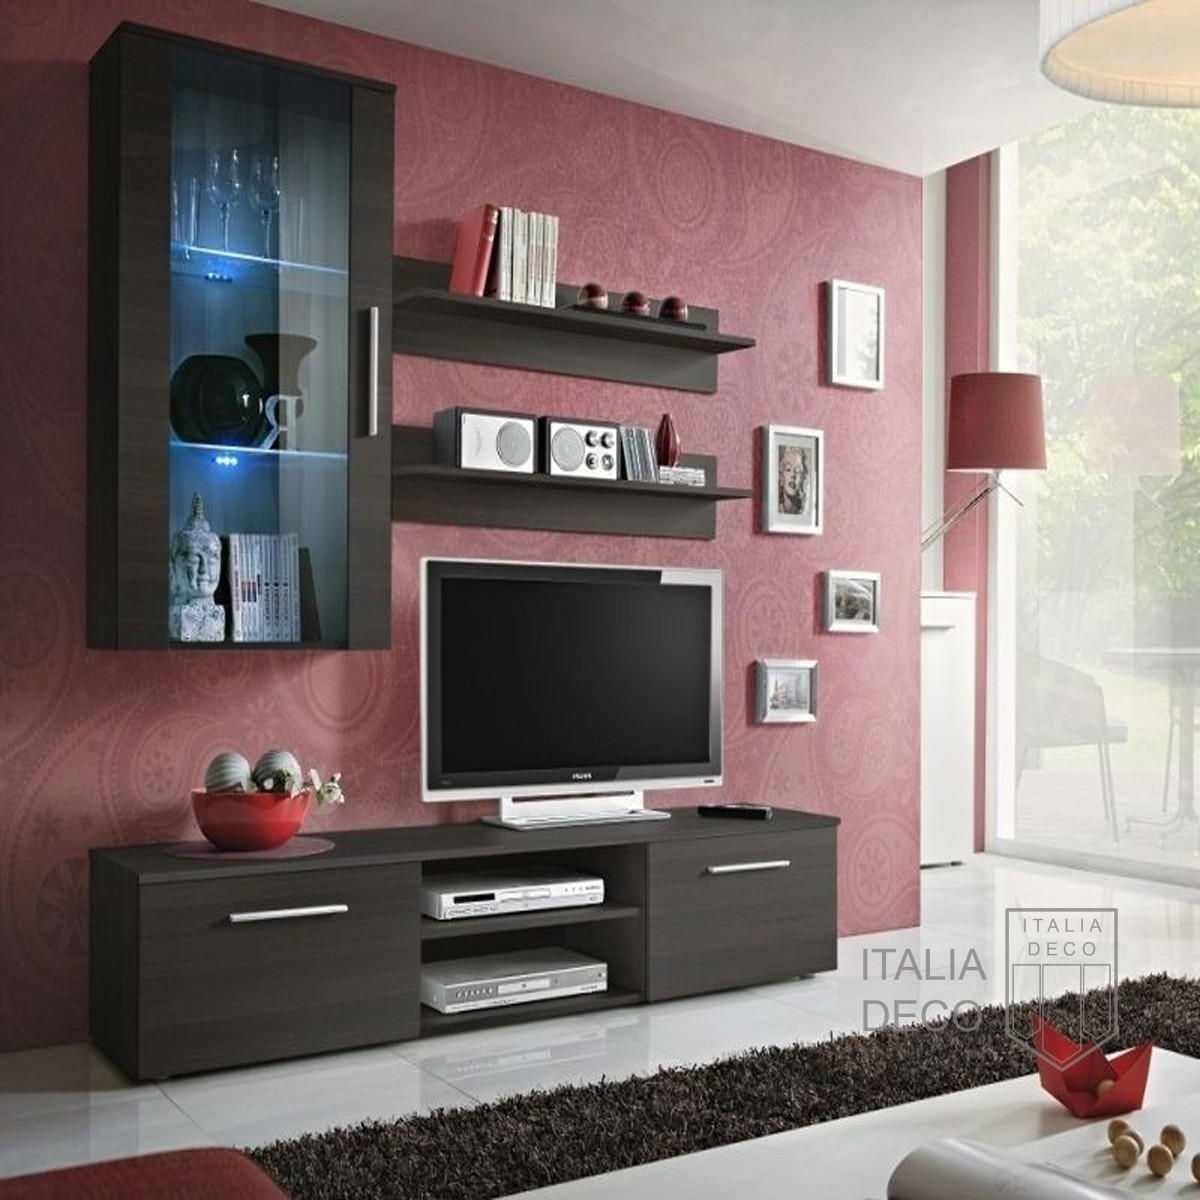 Modular para tv lcd vajillero trento italia deco for Muebles modernos living para tv